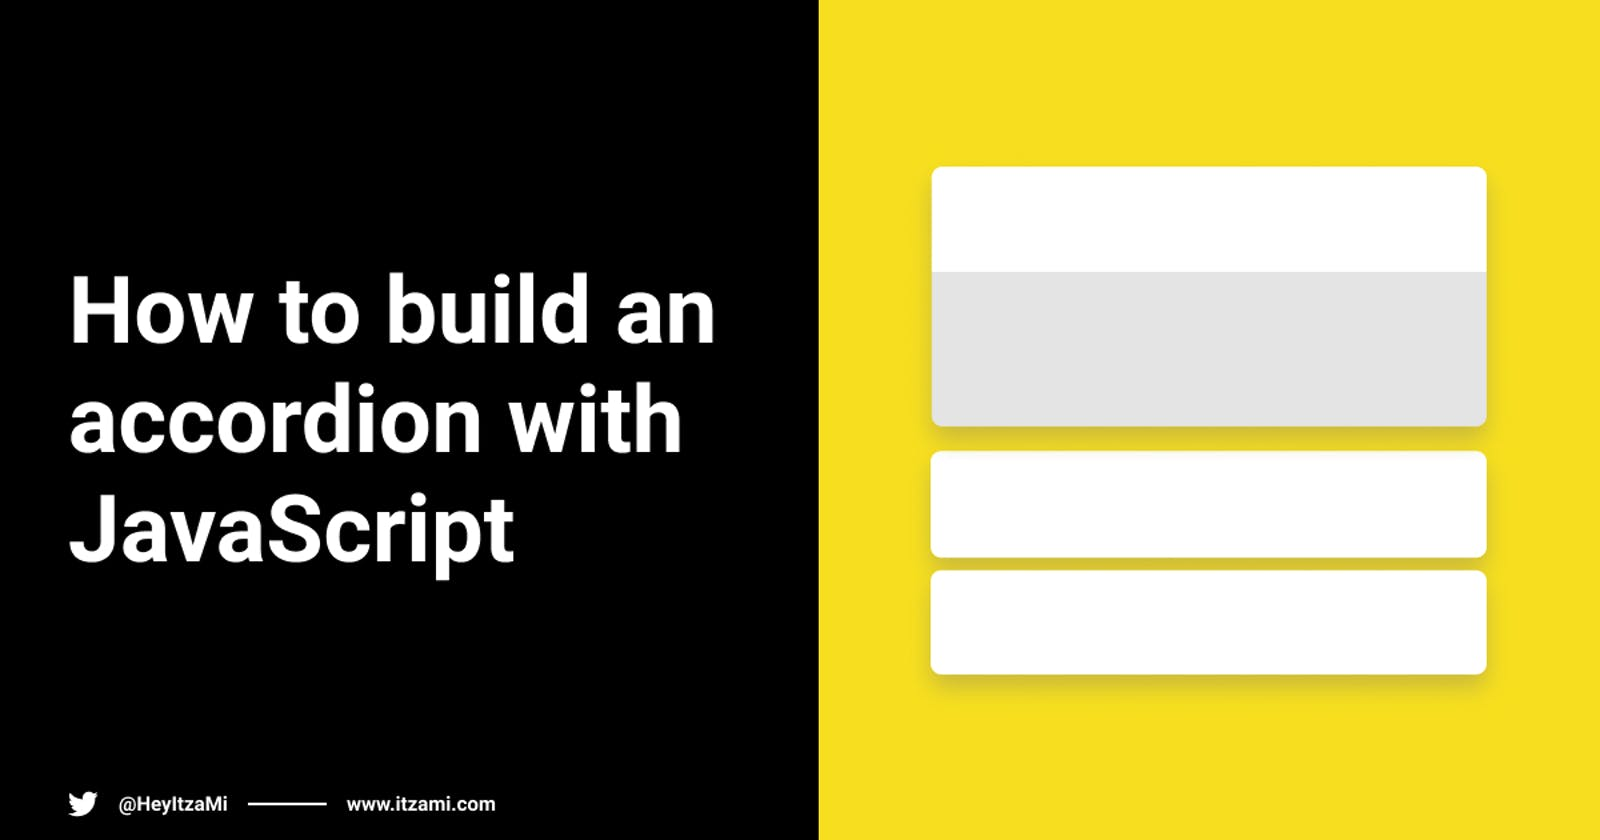 How to build an accordion with JavaScript